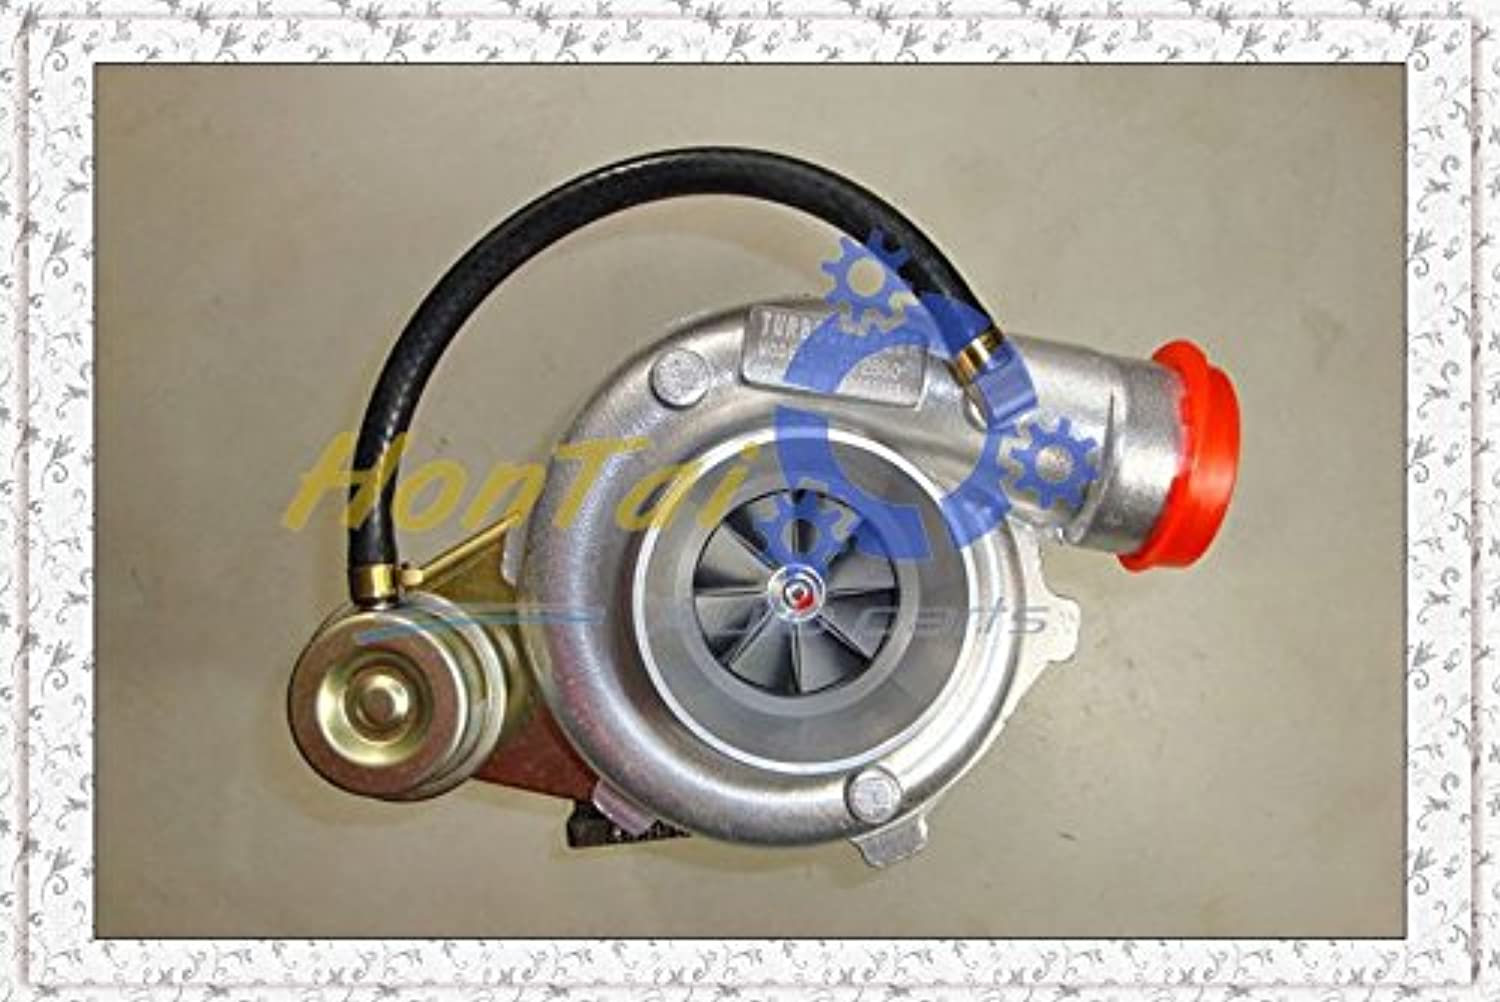 New Turbo Turbocharger GT2860 compressor  a r. 42 turbine  a r.64 water cooled T25